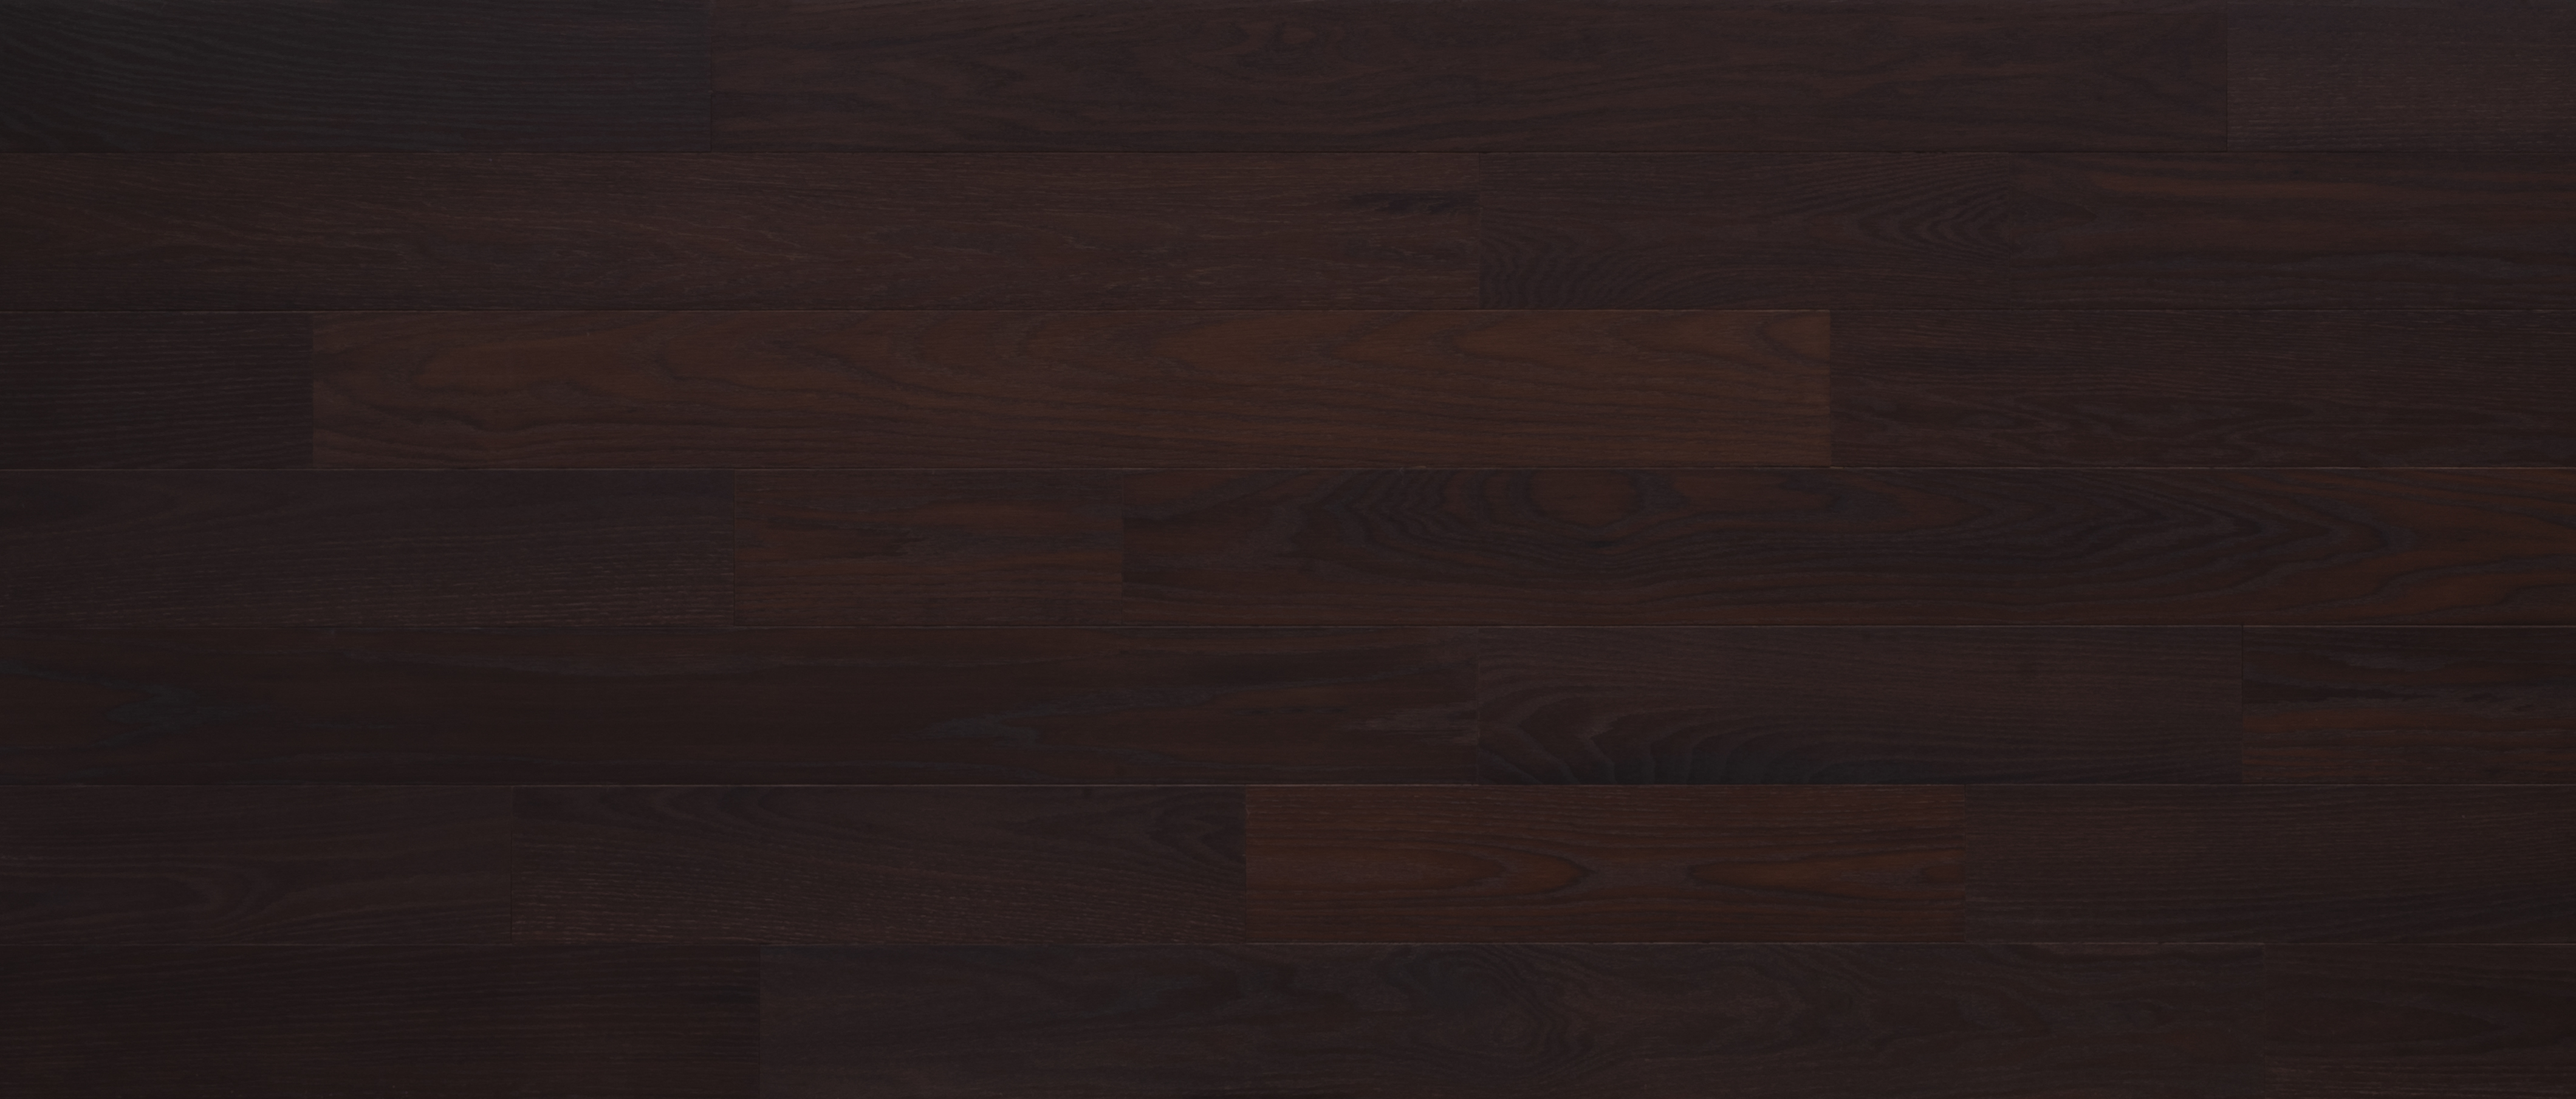 Stikwood Black Cherry material explorer   sustainable oak peel and stick wood wall and ceiling planks with dark brown and warm red colors.